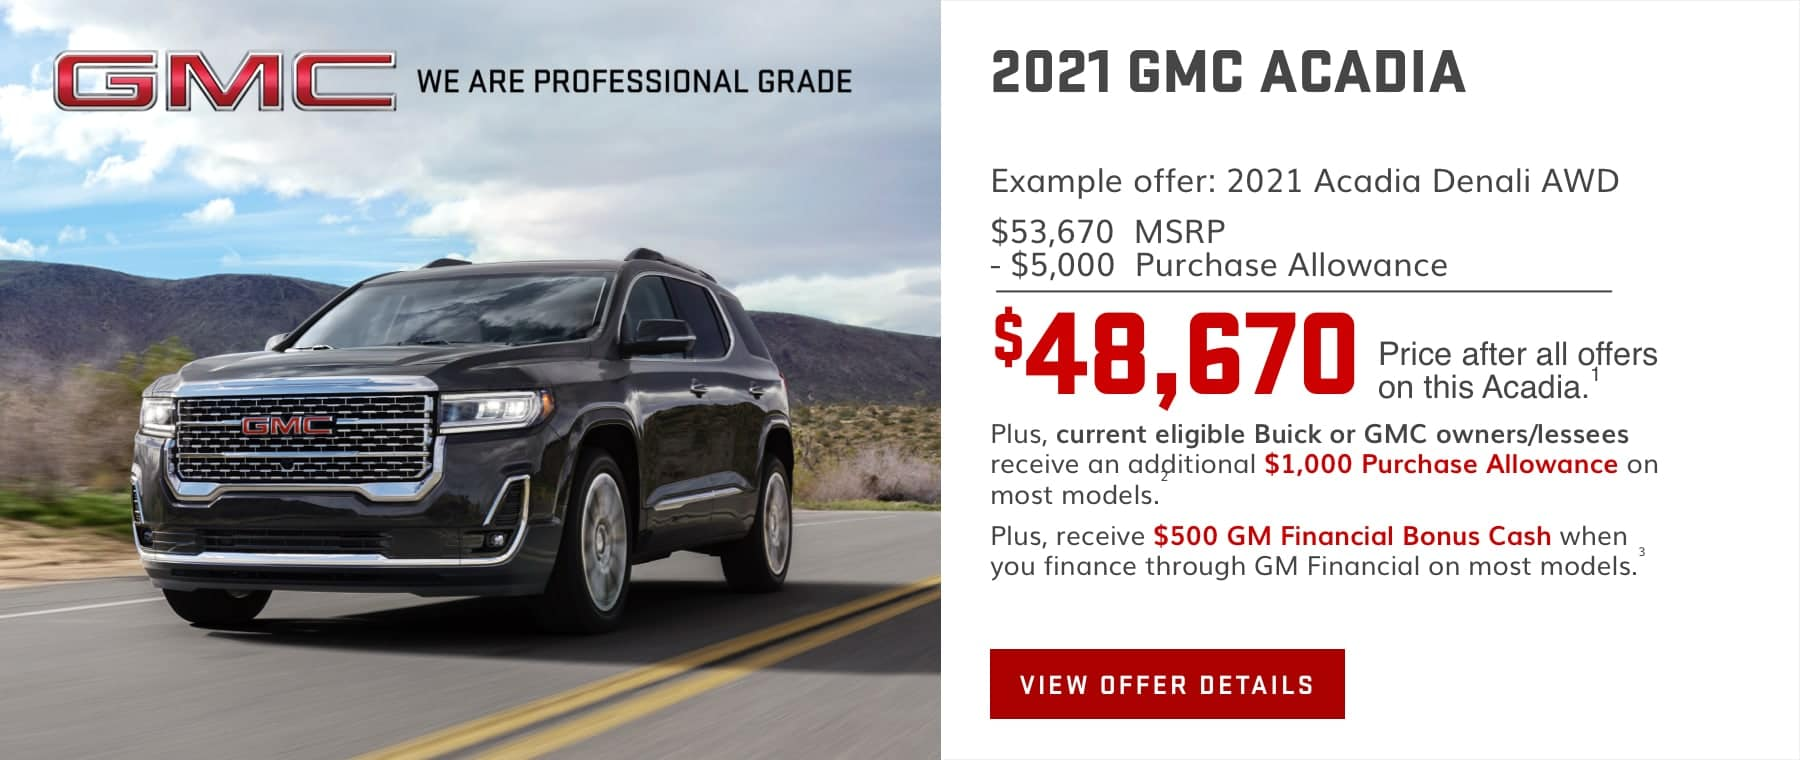 $48,670 Price after all offers on this Acadia.1 Plus, current eligible Buick or GMC owners/lessees receive an additional $1,000 Purchase Allowance on most models.2 Plus, receive $500 GM Financial Bonus Cash when you finance through GM Financial on most models.3